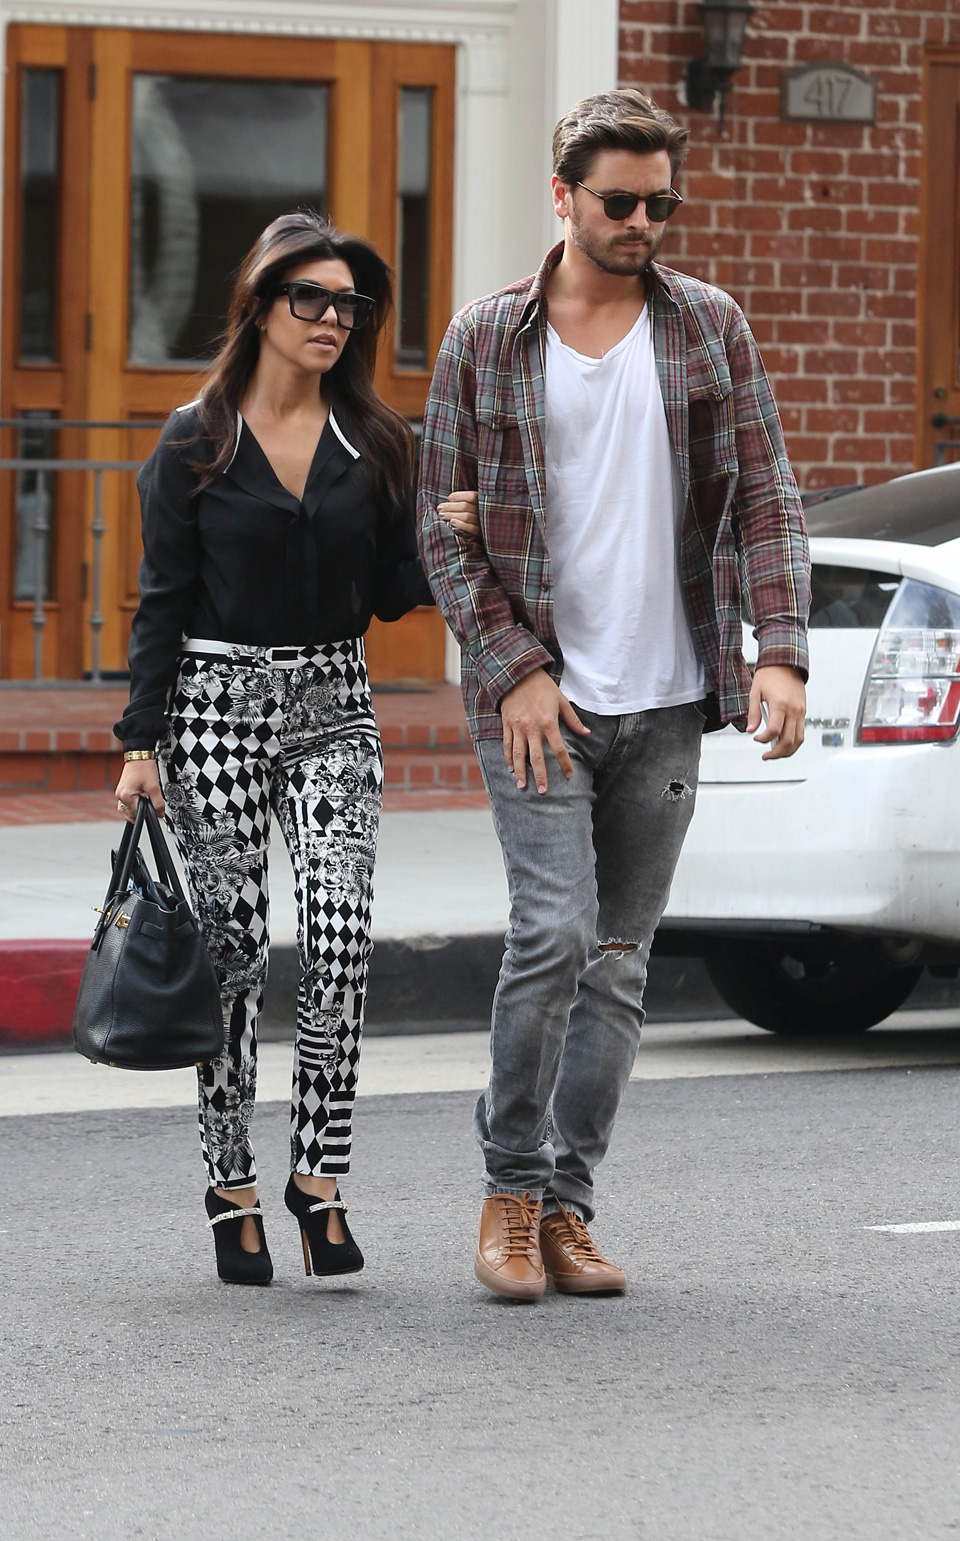 Scott Disick and Kourtney Kardashian out and about town